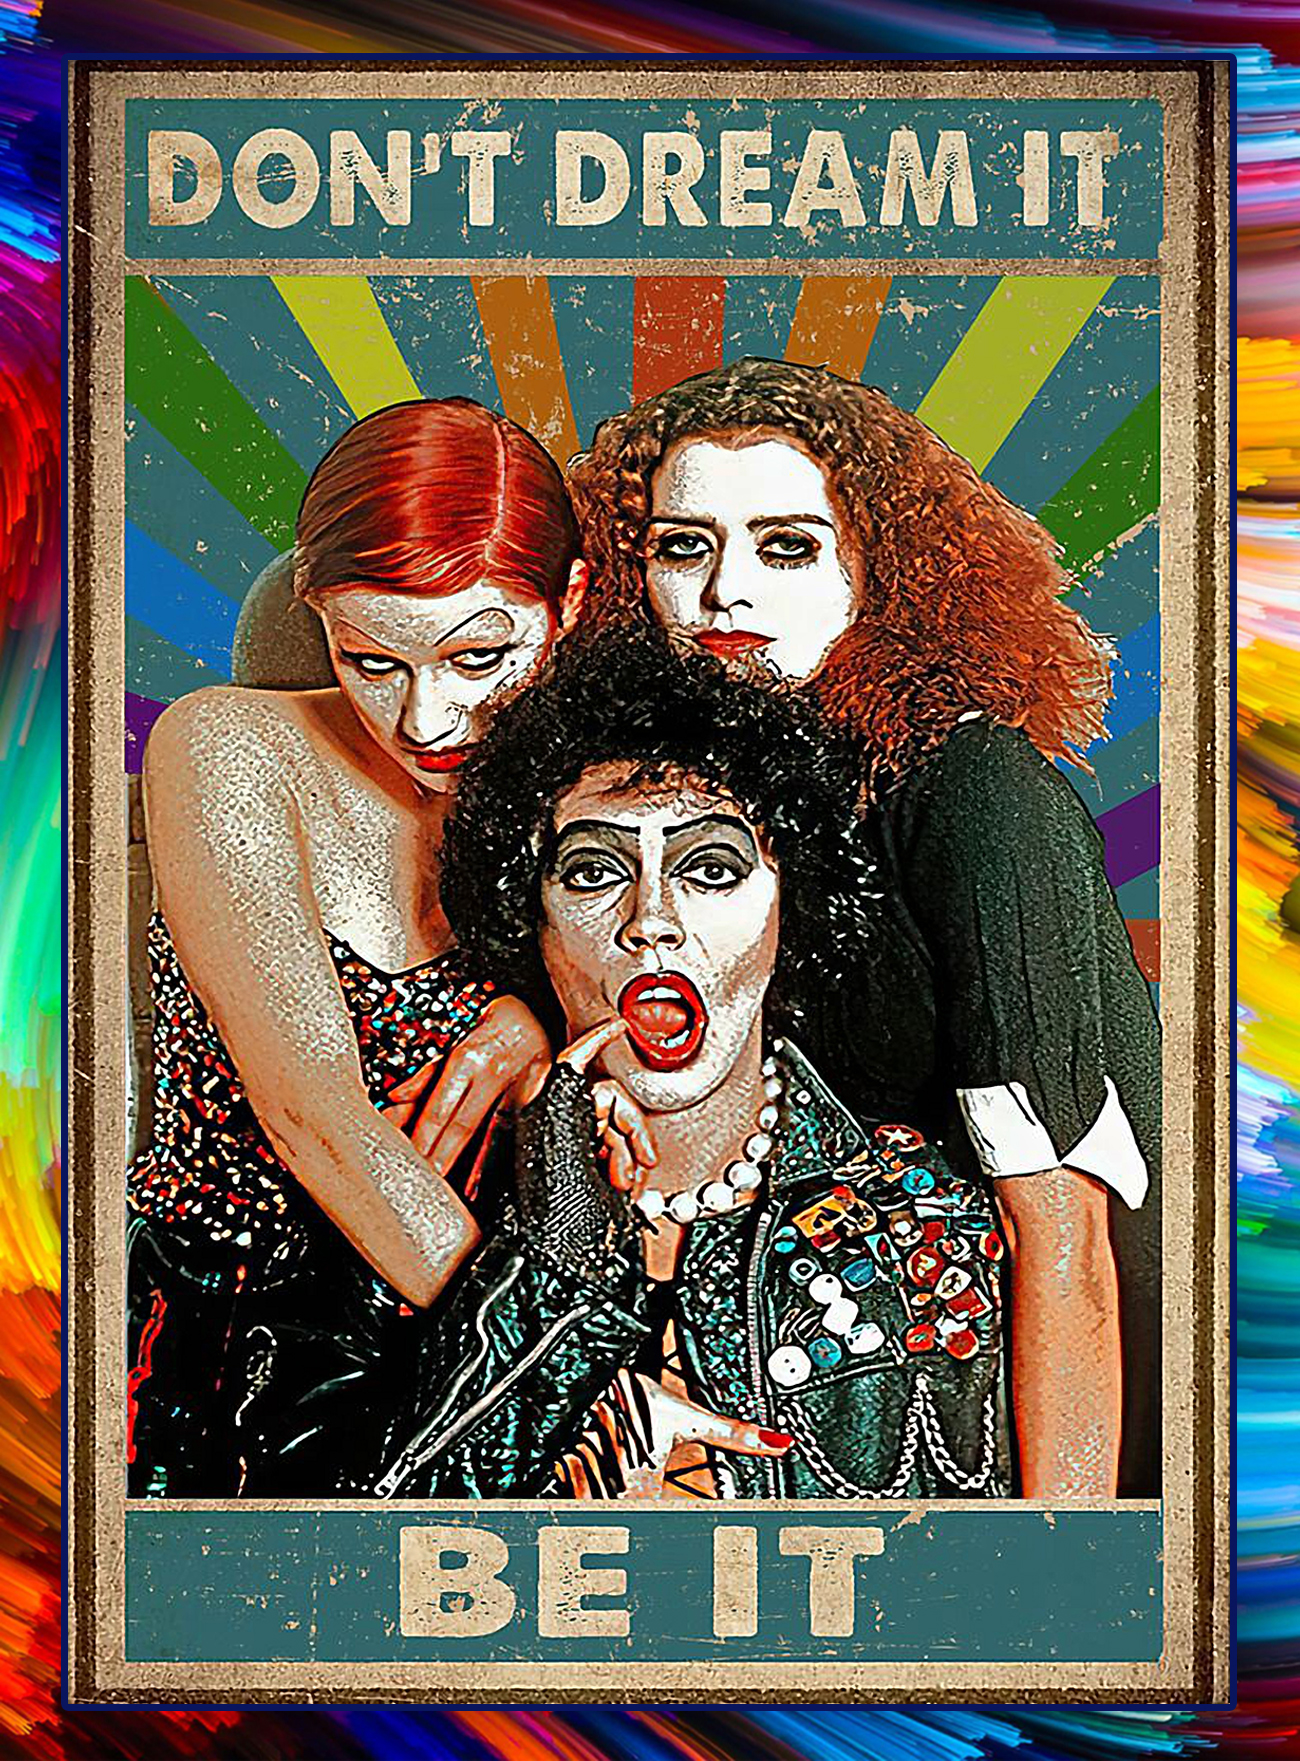 Rocky horror picture show don't dream be it poster - A4